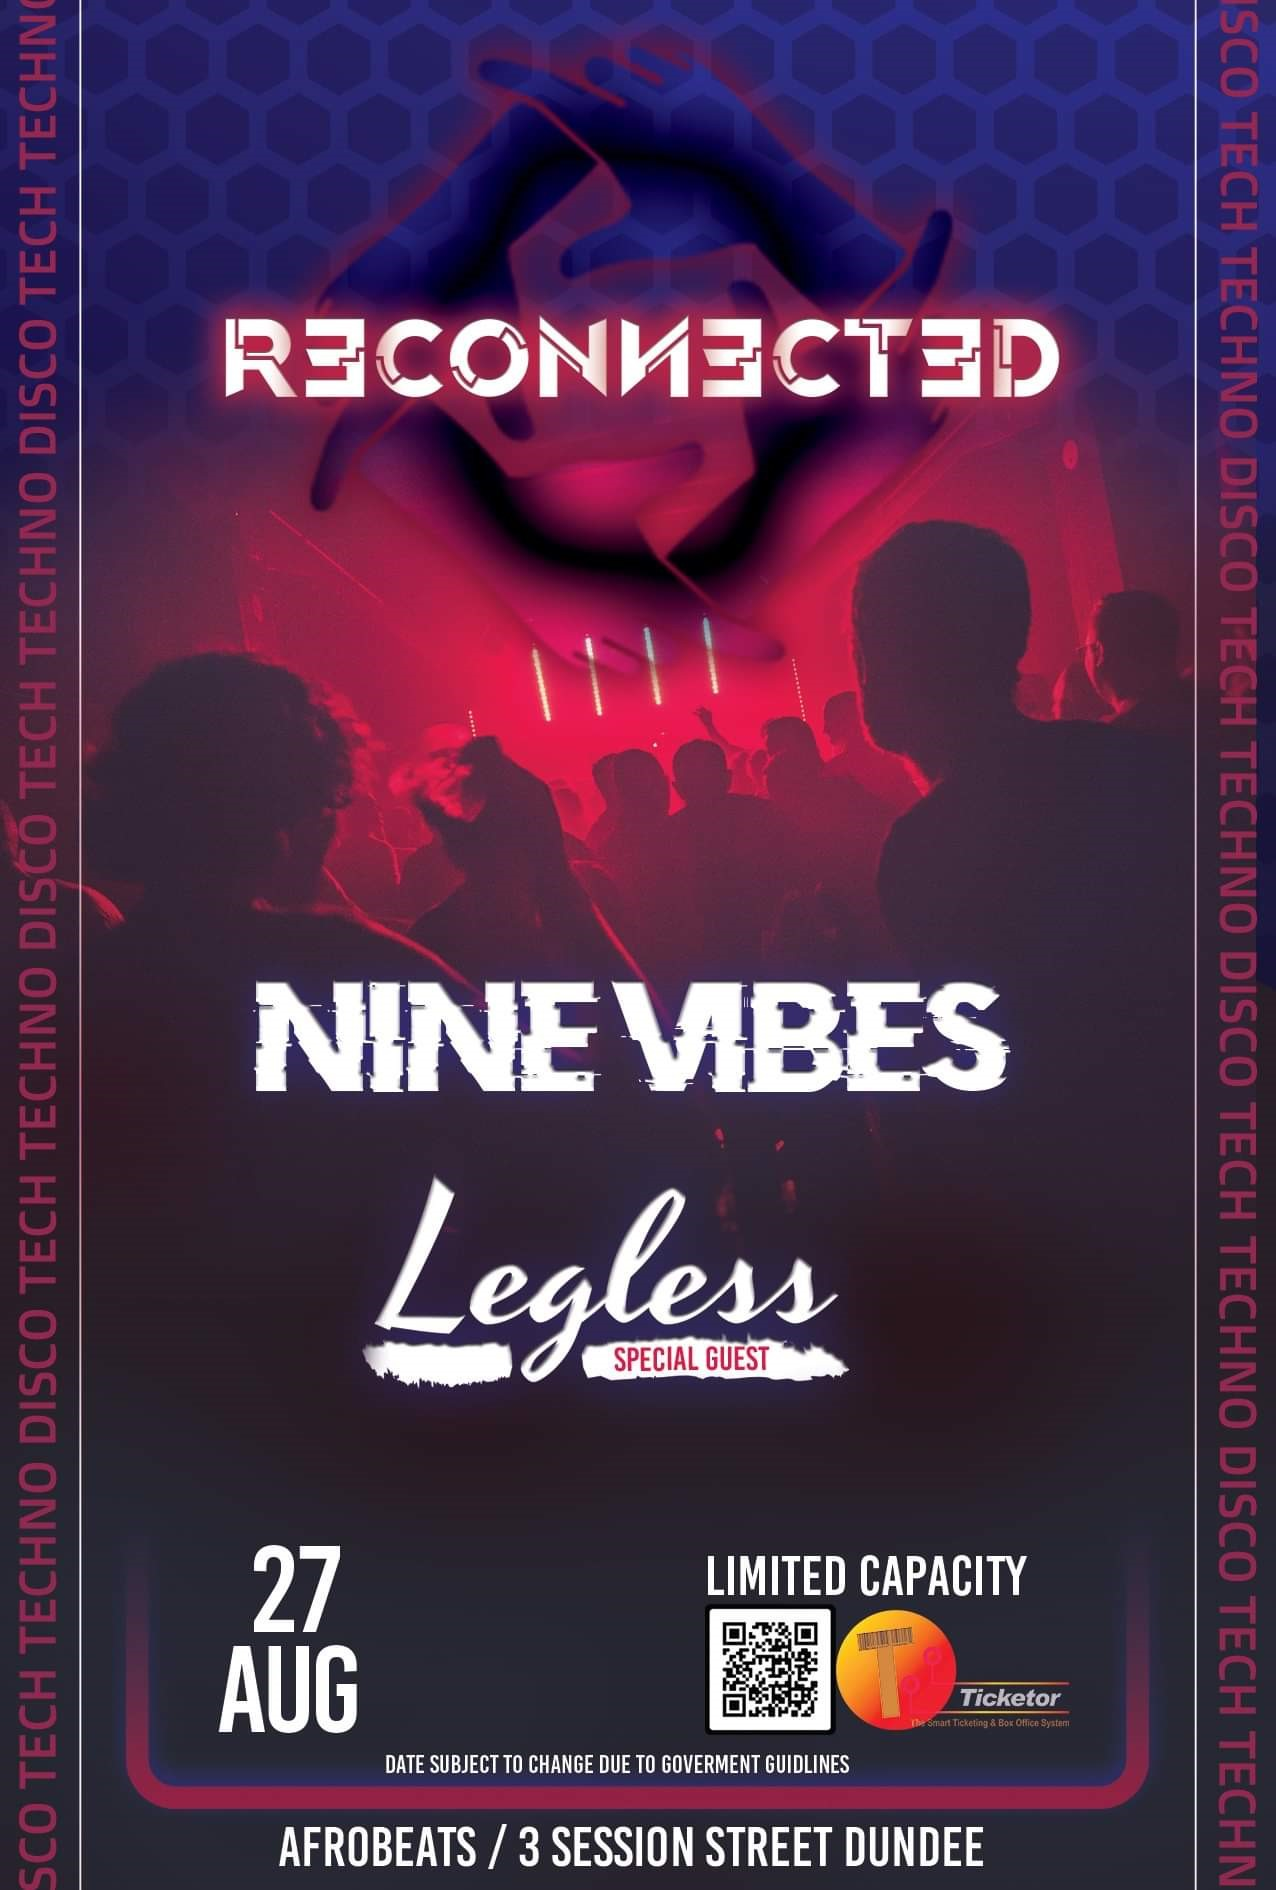 Reconnected Nine Vibes / Legless on Aug 27, 22:00@Afrobeats - Buy tickets and Get information on Nine Vibes Events